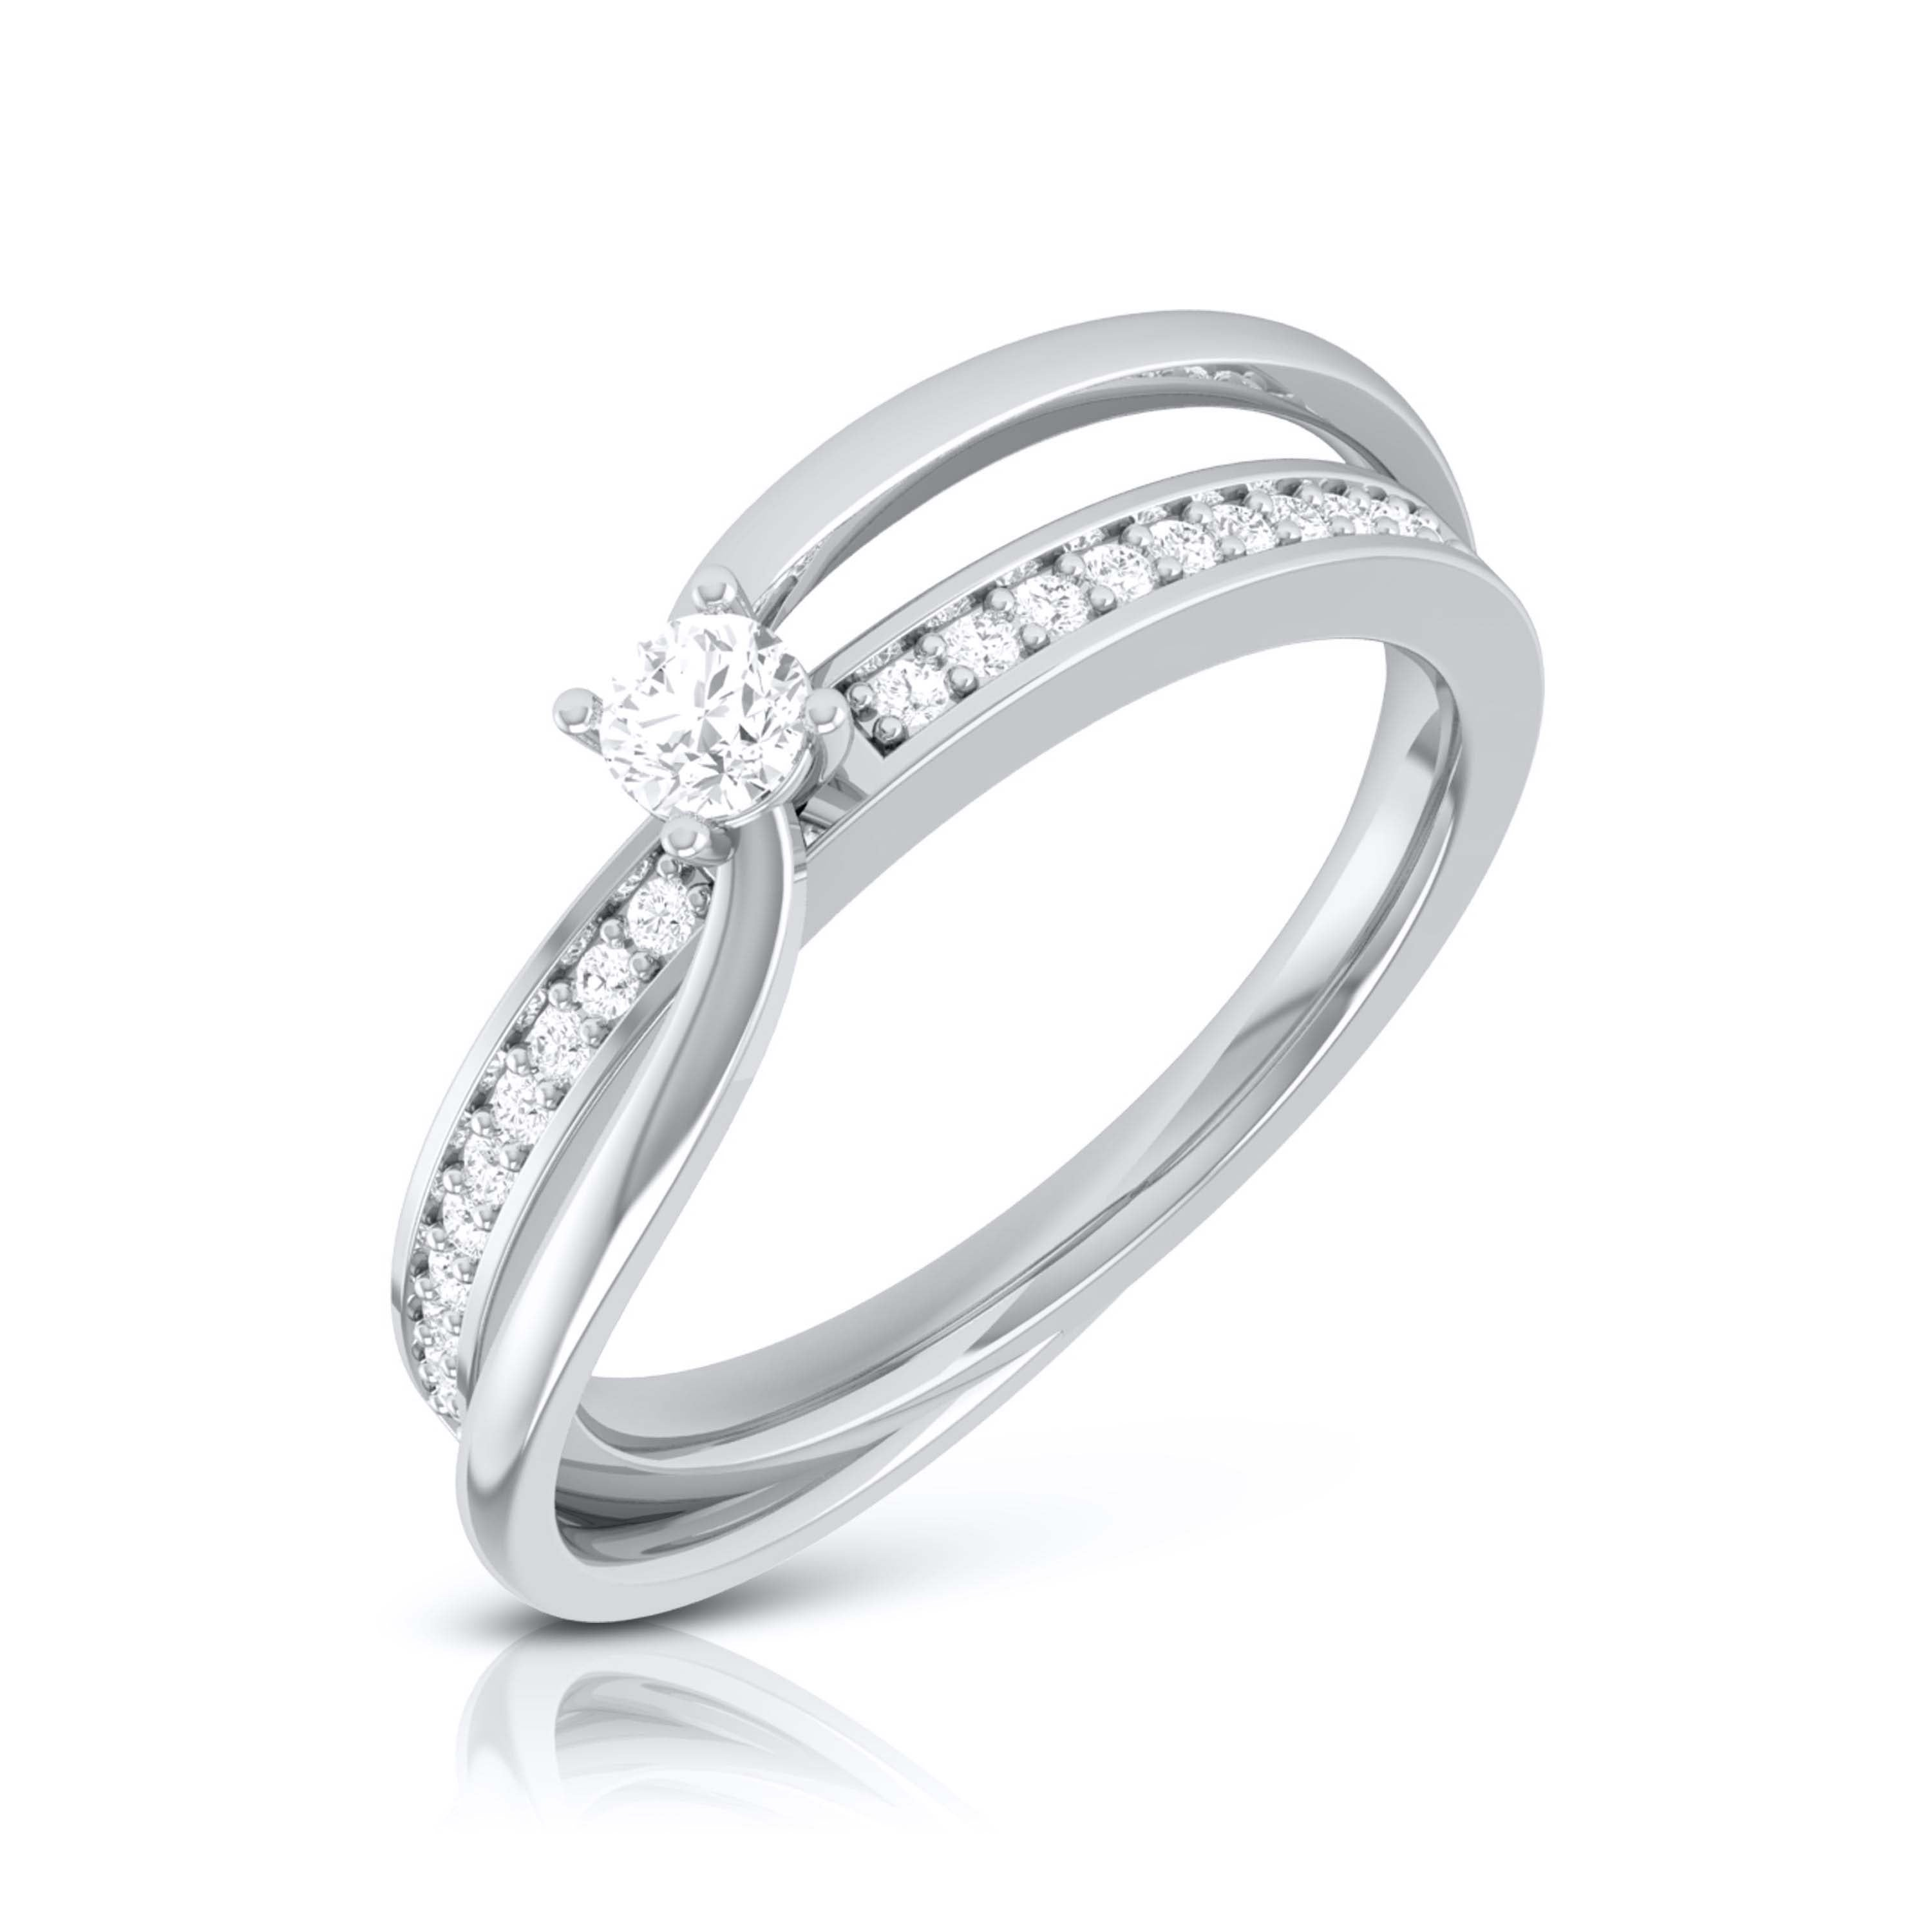 10-Pointer Designer Diamond Ring for Women with Diamond Studded Shank JL PT R-37